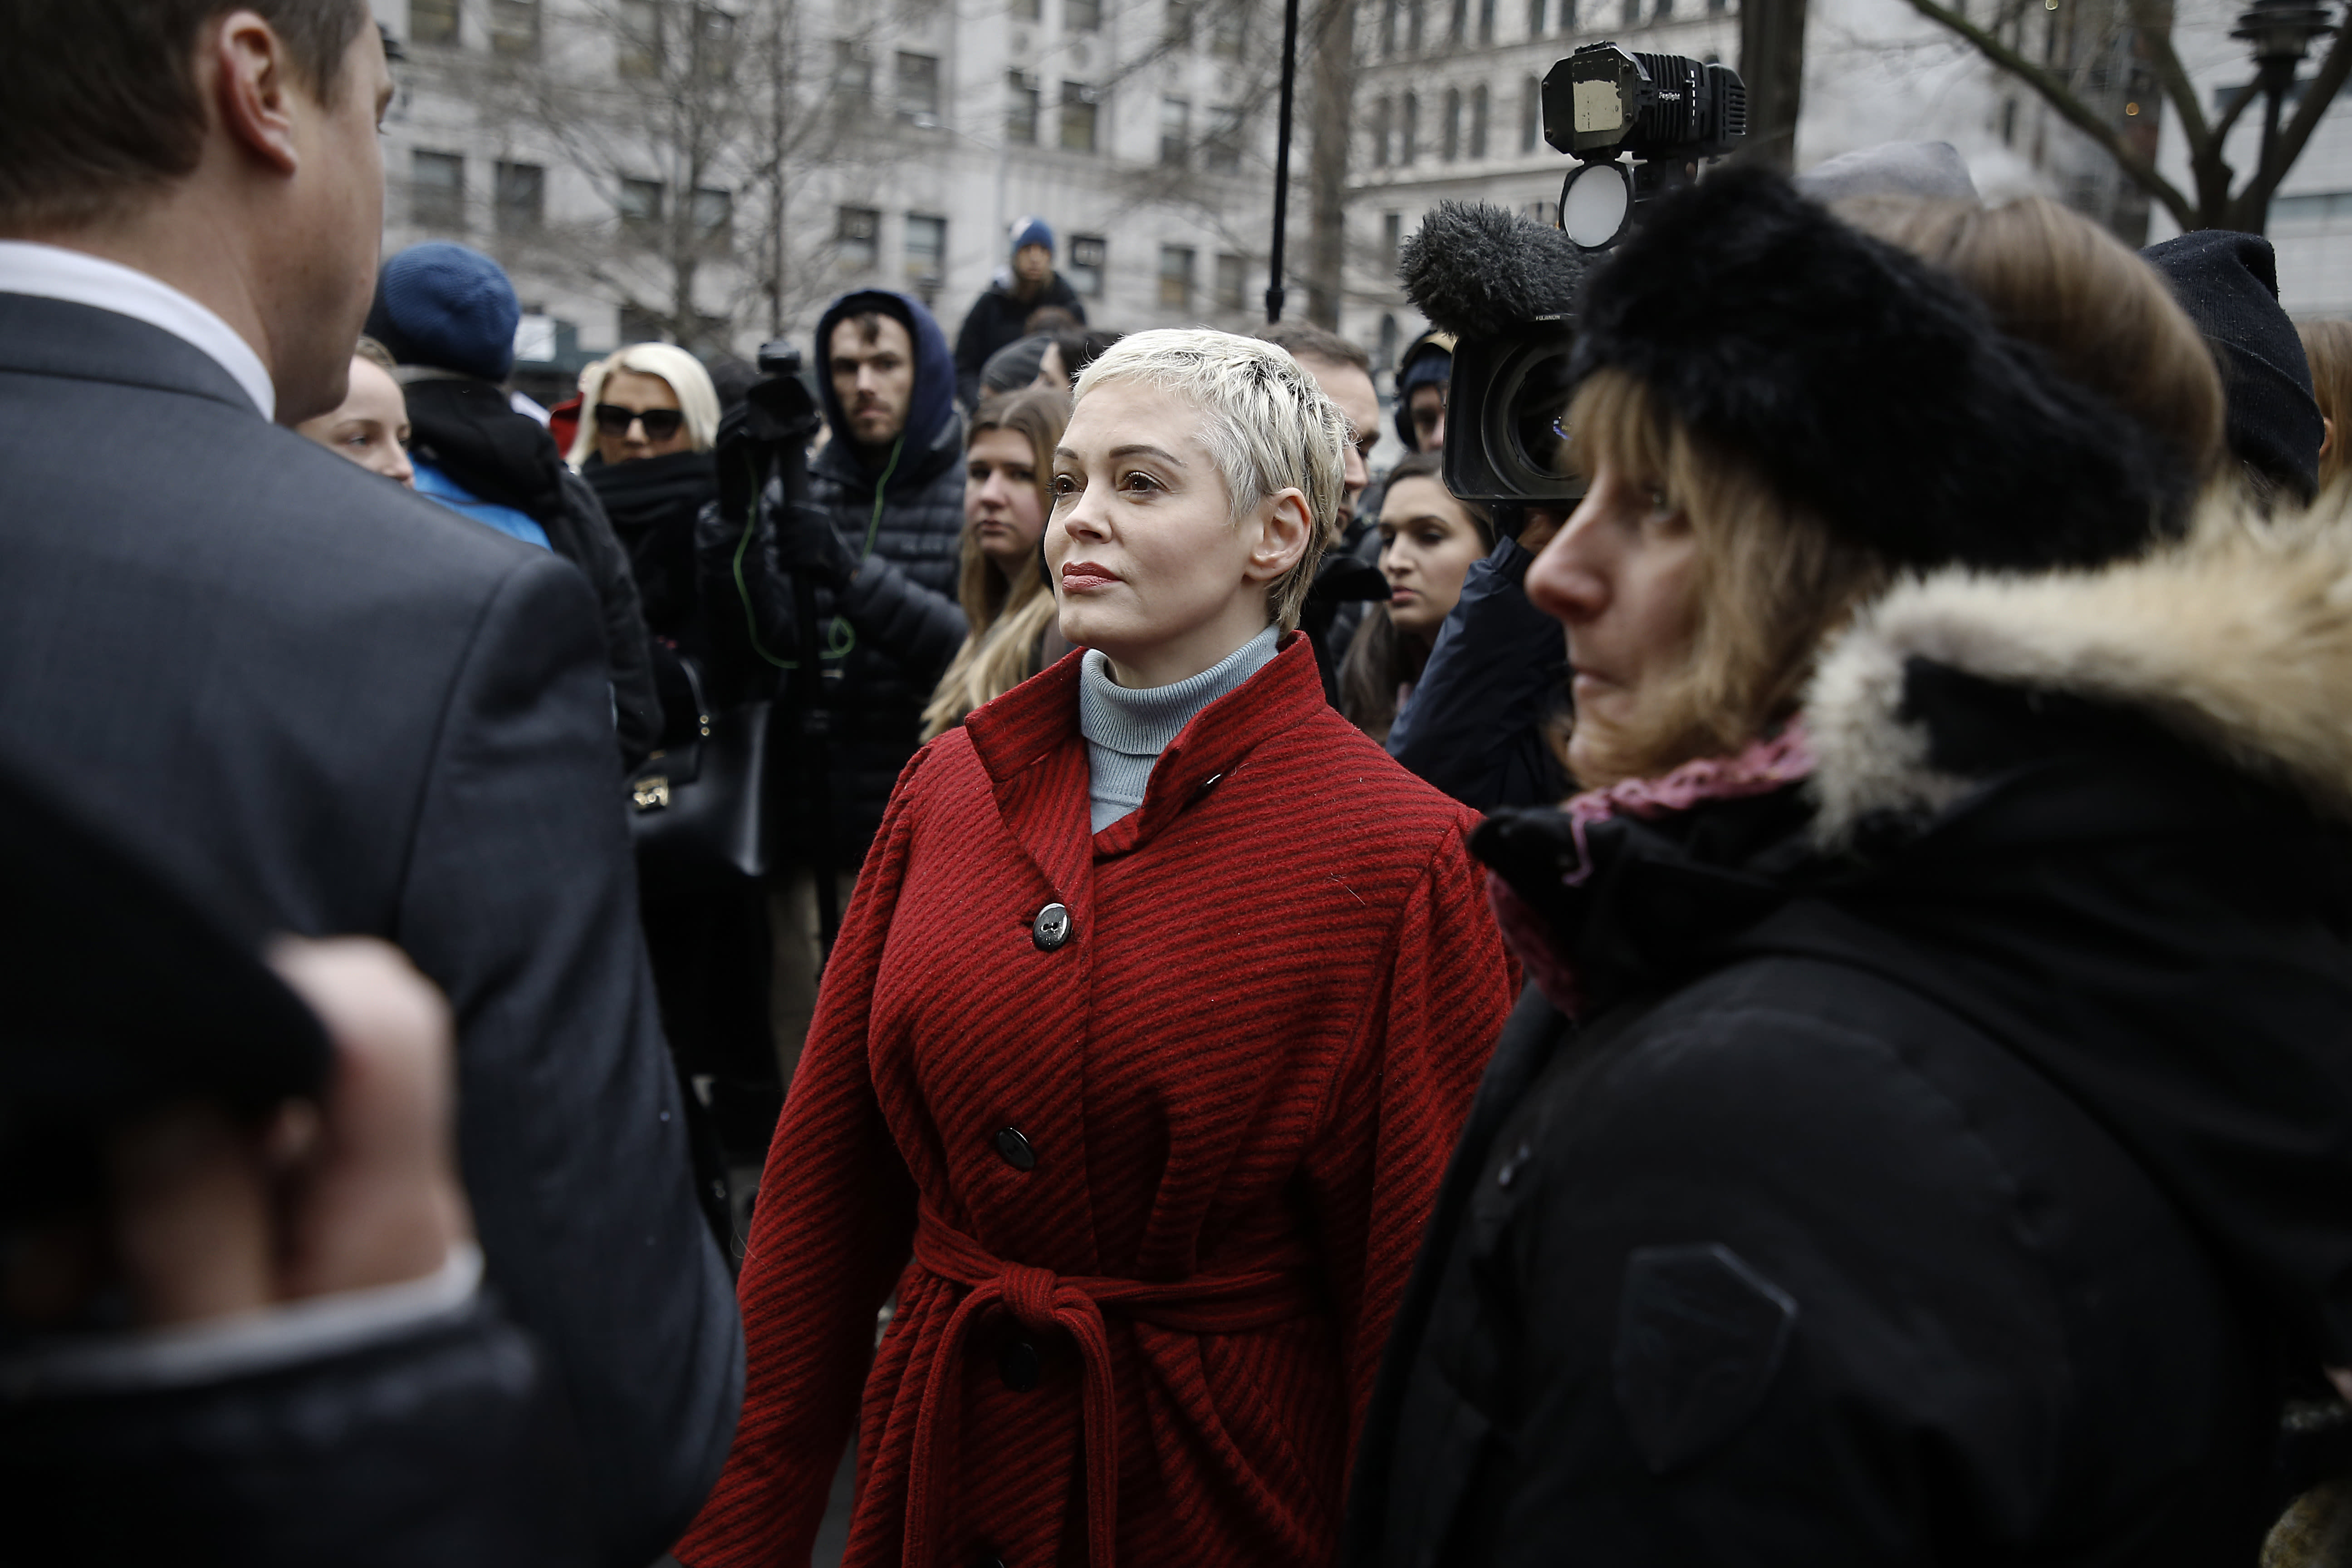 NEW YORK, UNITED STATES, JANUARY 6, 2020: Rose McGowen leaves a press conference during Harvey Weinstein's first day in court. According to CNN Mr. Weinstein was accused by more than eighty women of sexual abuse ranging from harassment to rape. He is charged with predatory sexual assault, criminal sexual act, first-degree rape and third-degree rape.- PHOTOGRAPH BY John Lamparski / Echoes Wire/ Barcroft Media (Photo credit should read John Lamparski / Echoes Wire / Barcroft Media via Getty Images)